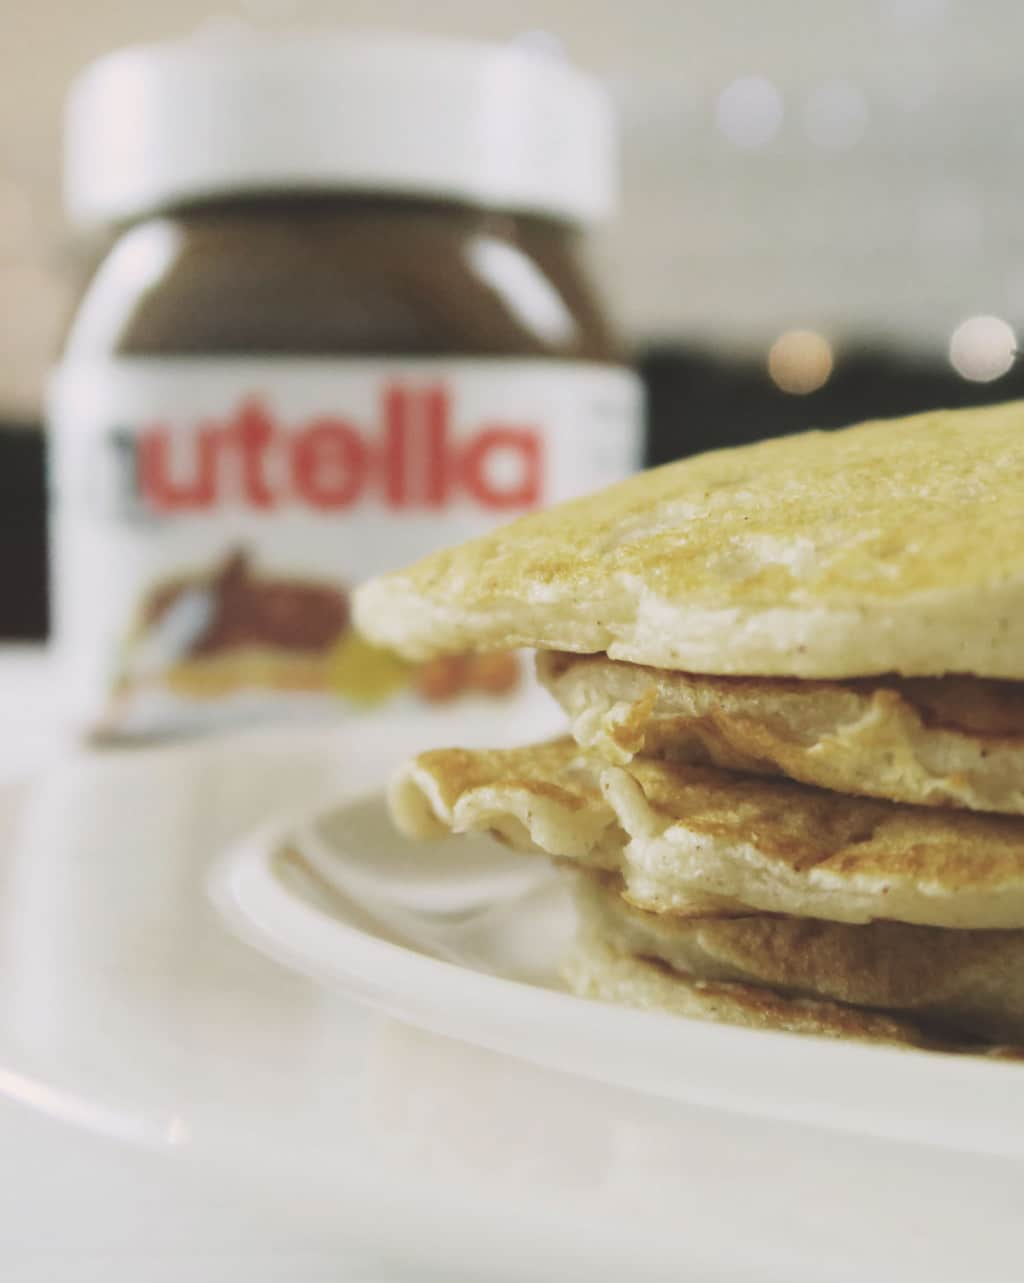 The Best Eggless Pancake Recipe EVER {Featuring Nutella} — stack of pancakes with Nutella